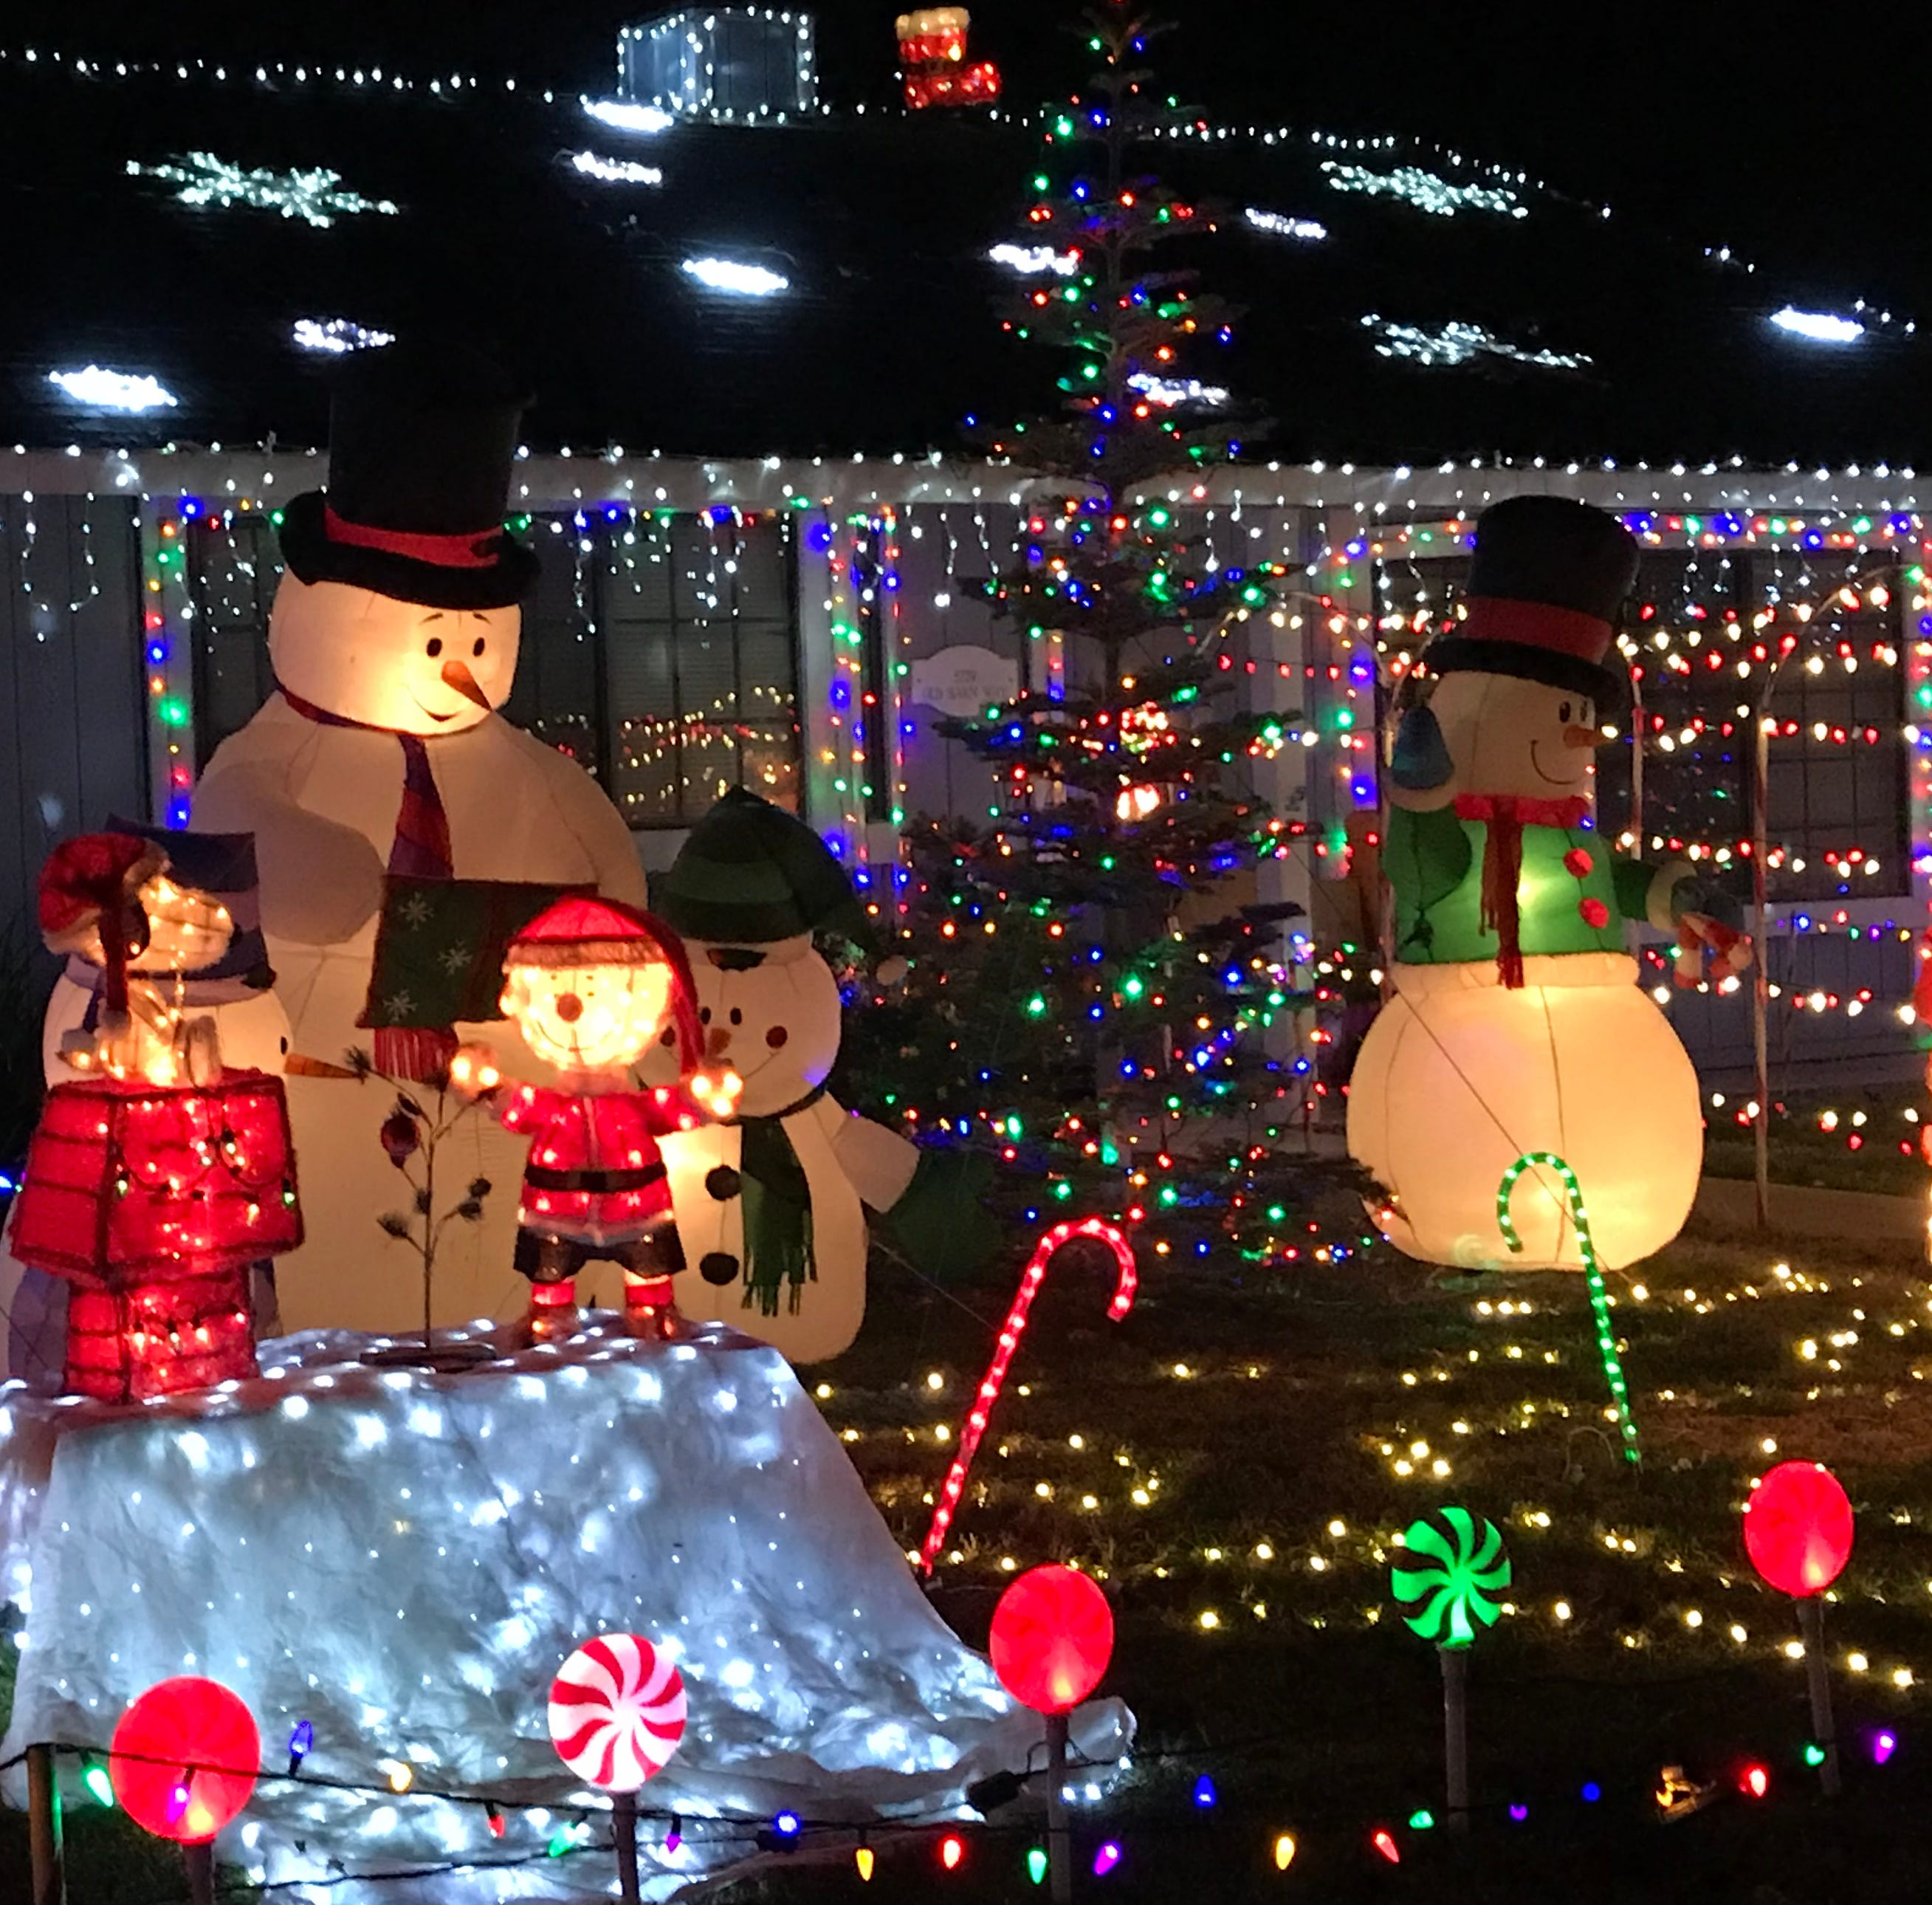 Watch: Let there be Christmas lights! 11 of the best displays in the Redding area